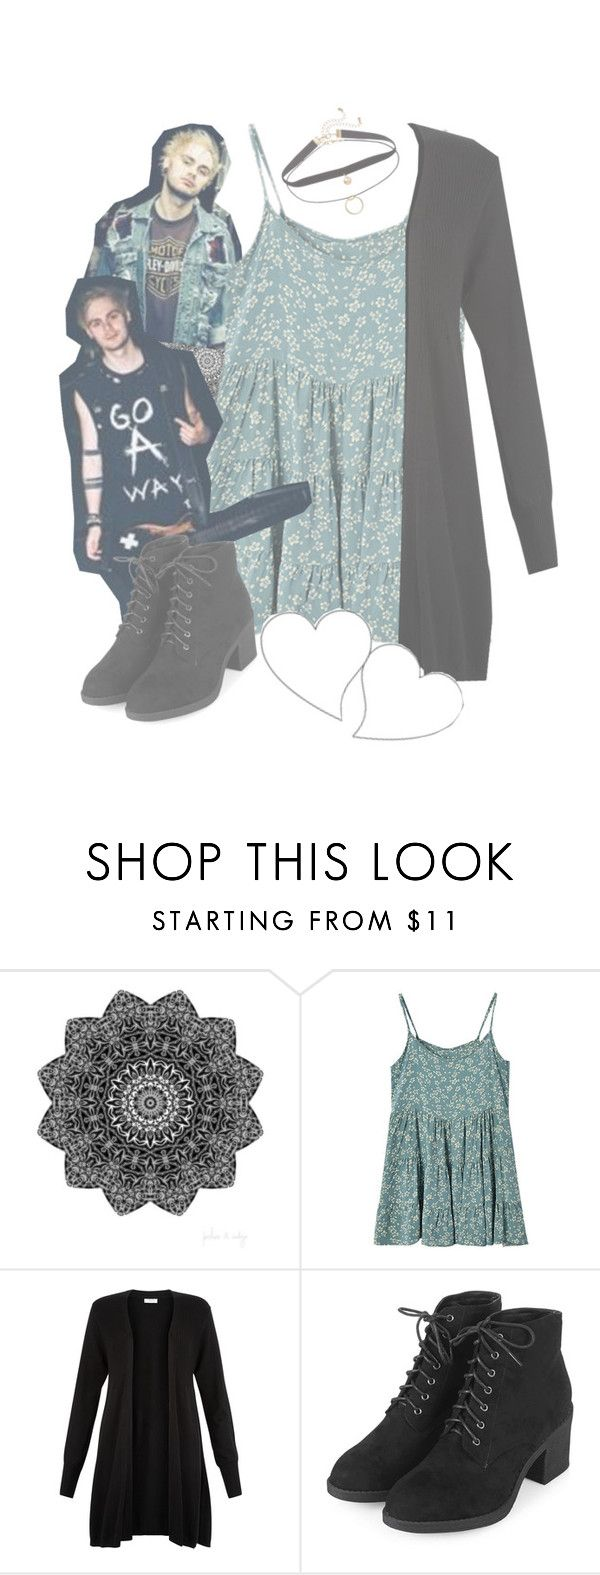 """""""over crowded set -- with Mikey Clifford x // I'm finally a style icon woOH!"""" by audrey-panda ❤ liked on Polyvore featuring Monsoon and Topshop"""